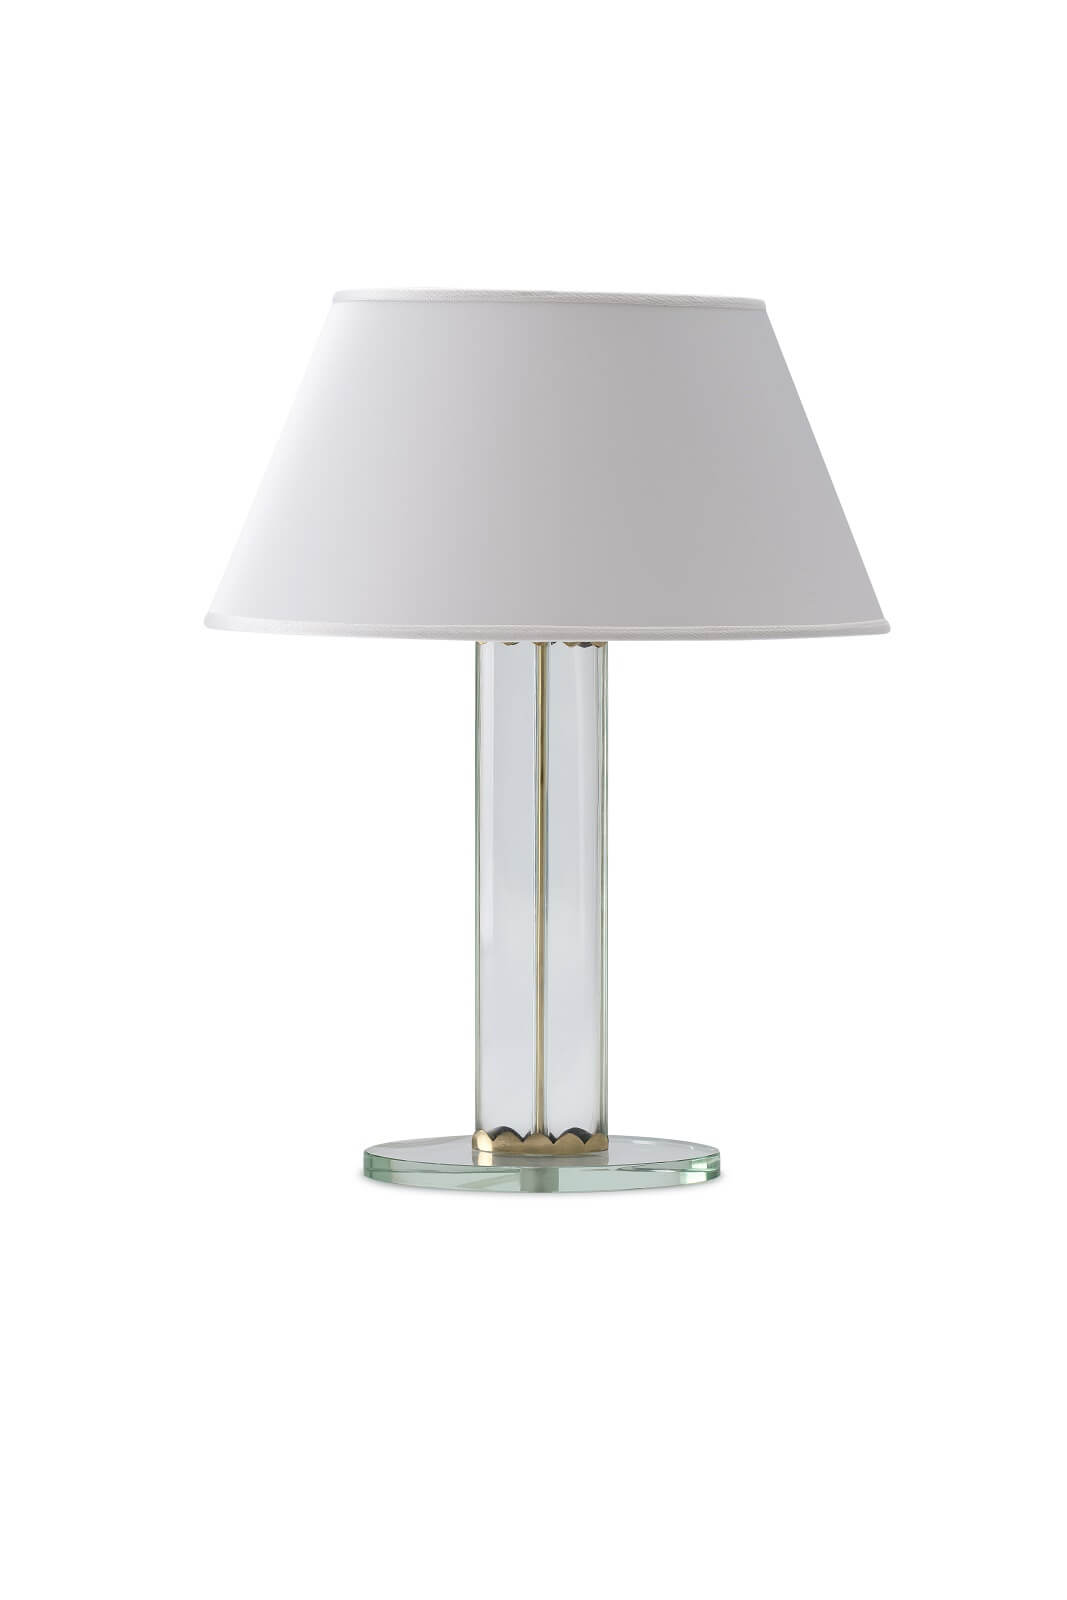 Table lamp by Pietro Chiesa for sale